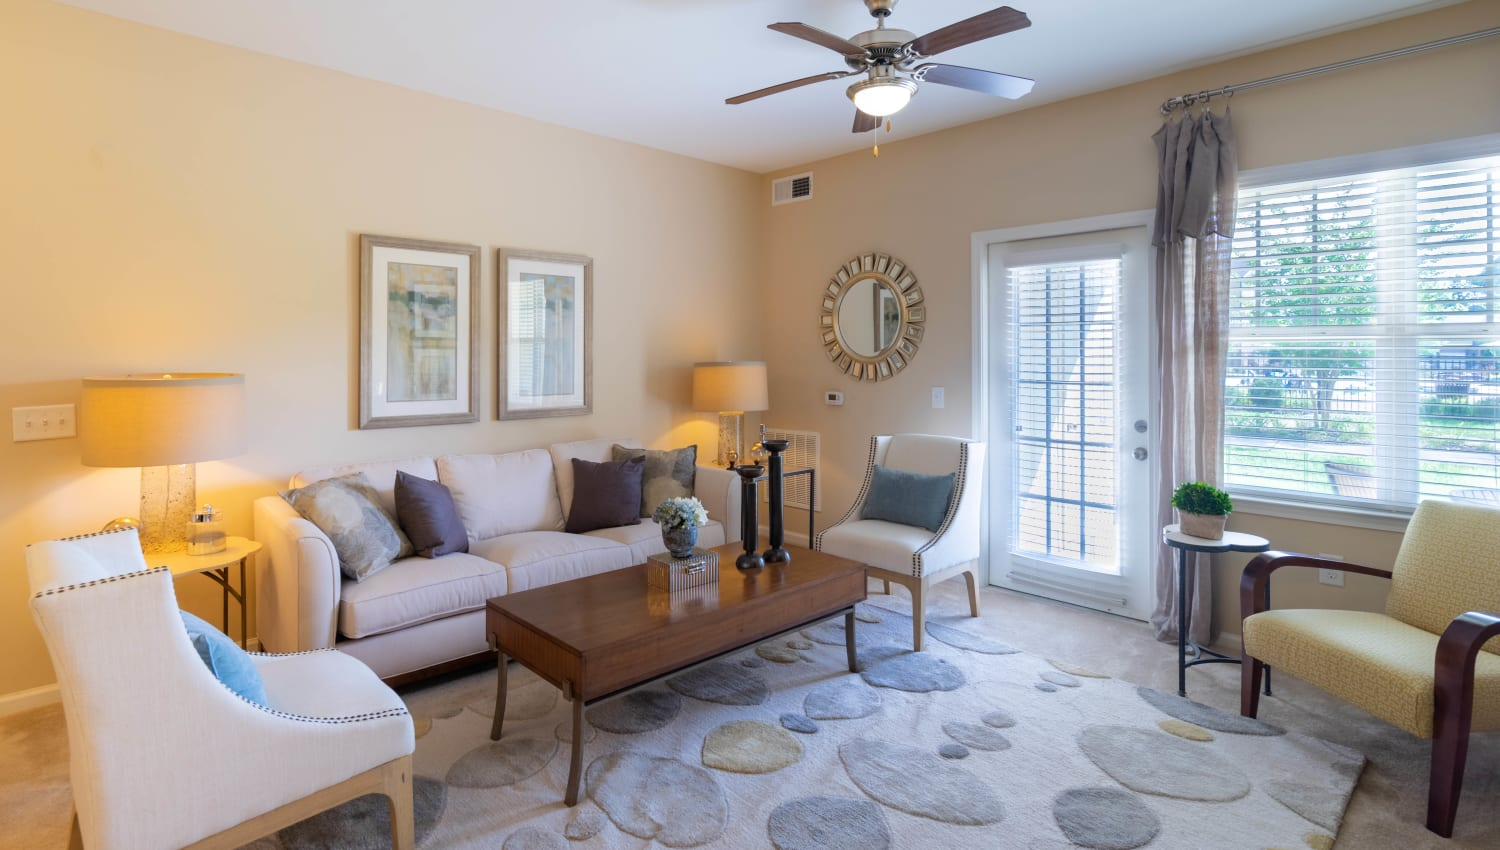 Ceiling fan and modern decor in the living area of a model home at Legends at White Oak in Ooltewah, Tennessee